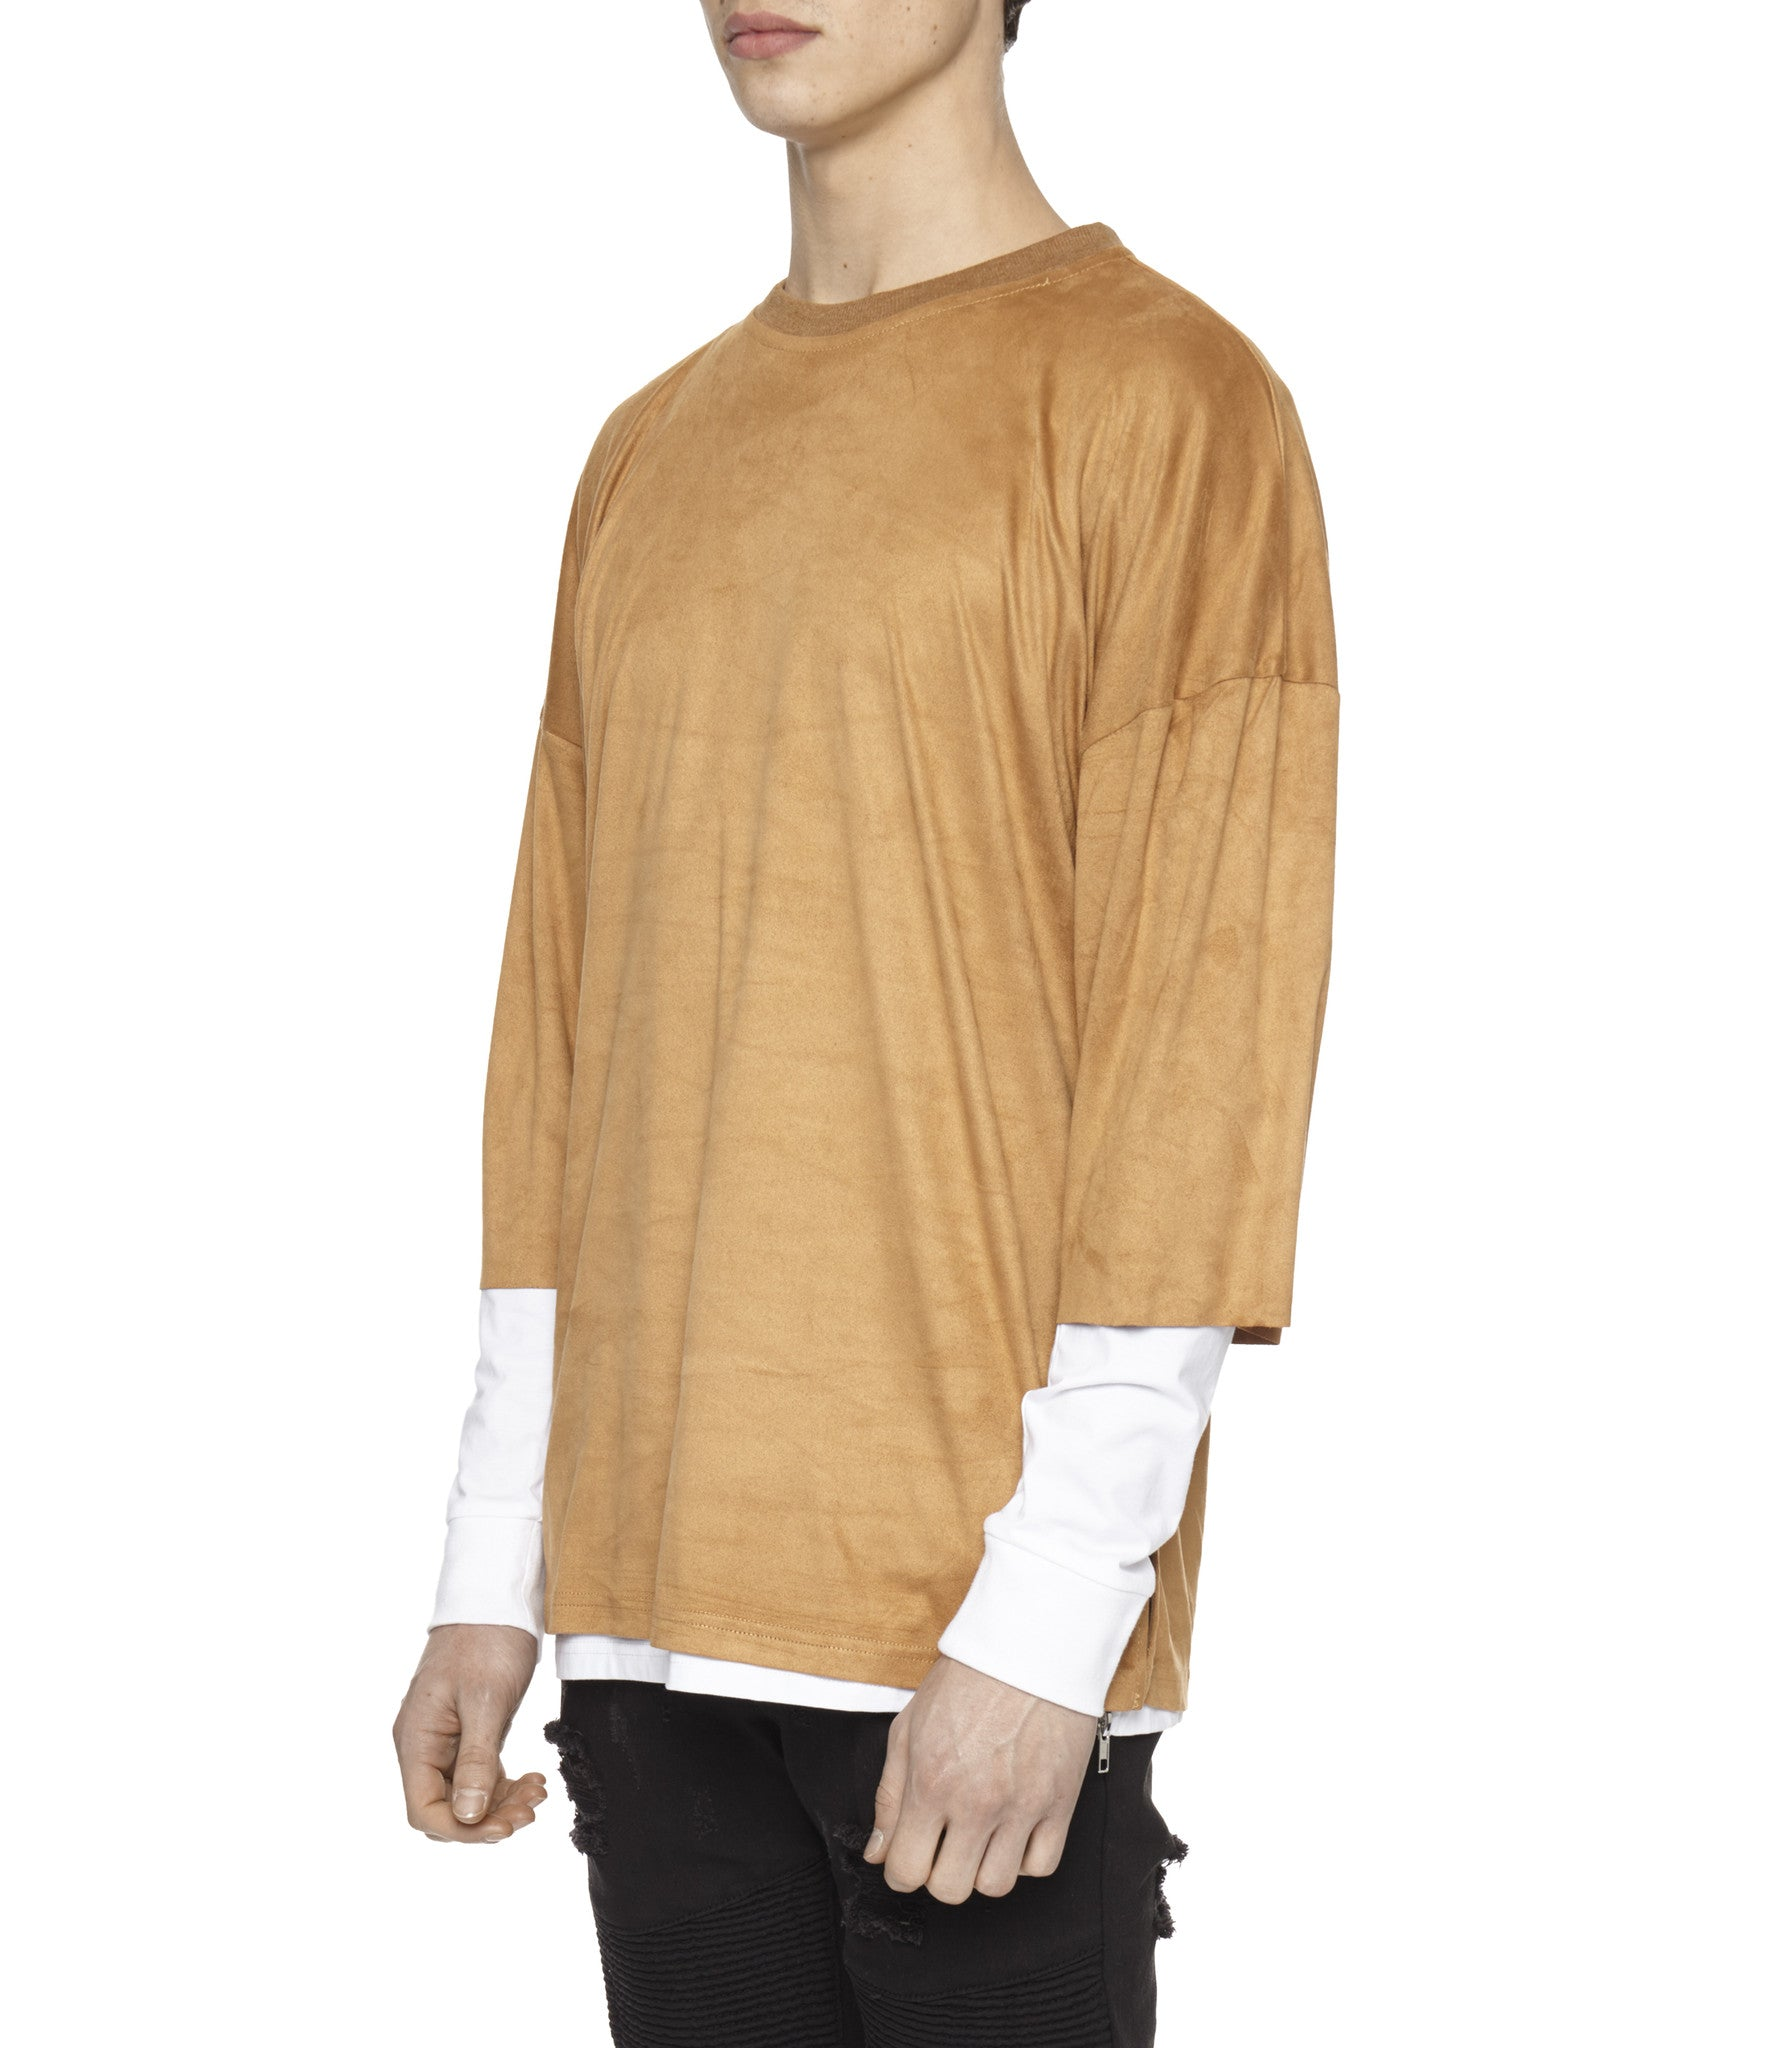 TS302 Suede Oversized Box Tee - Tan - underated london - underatedco - 4